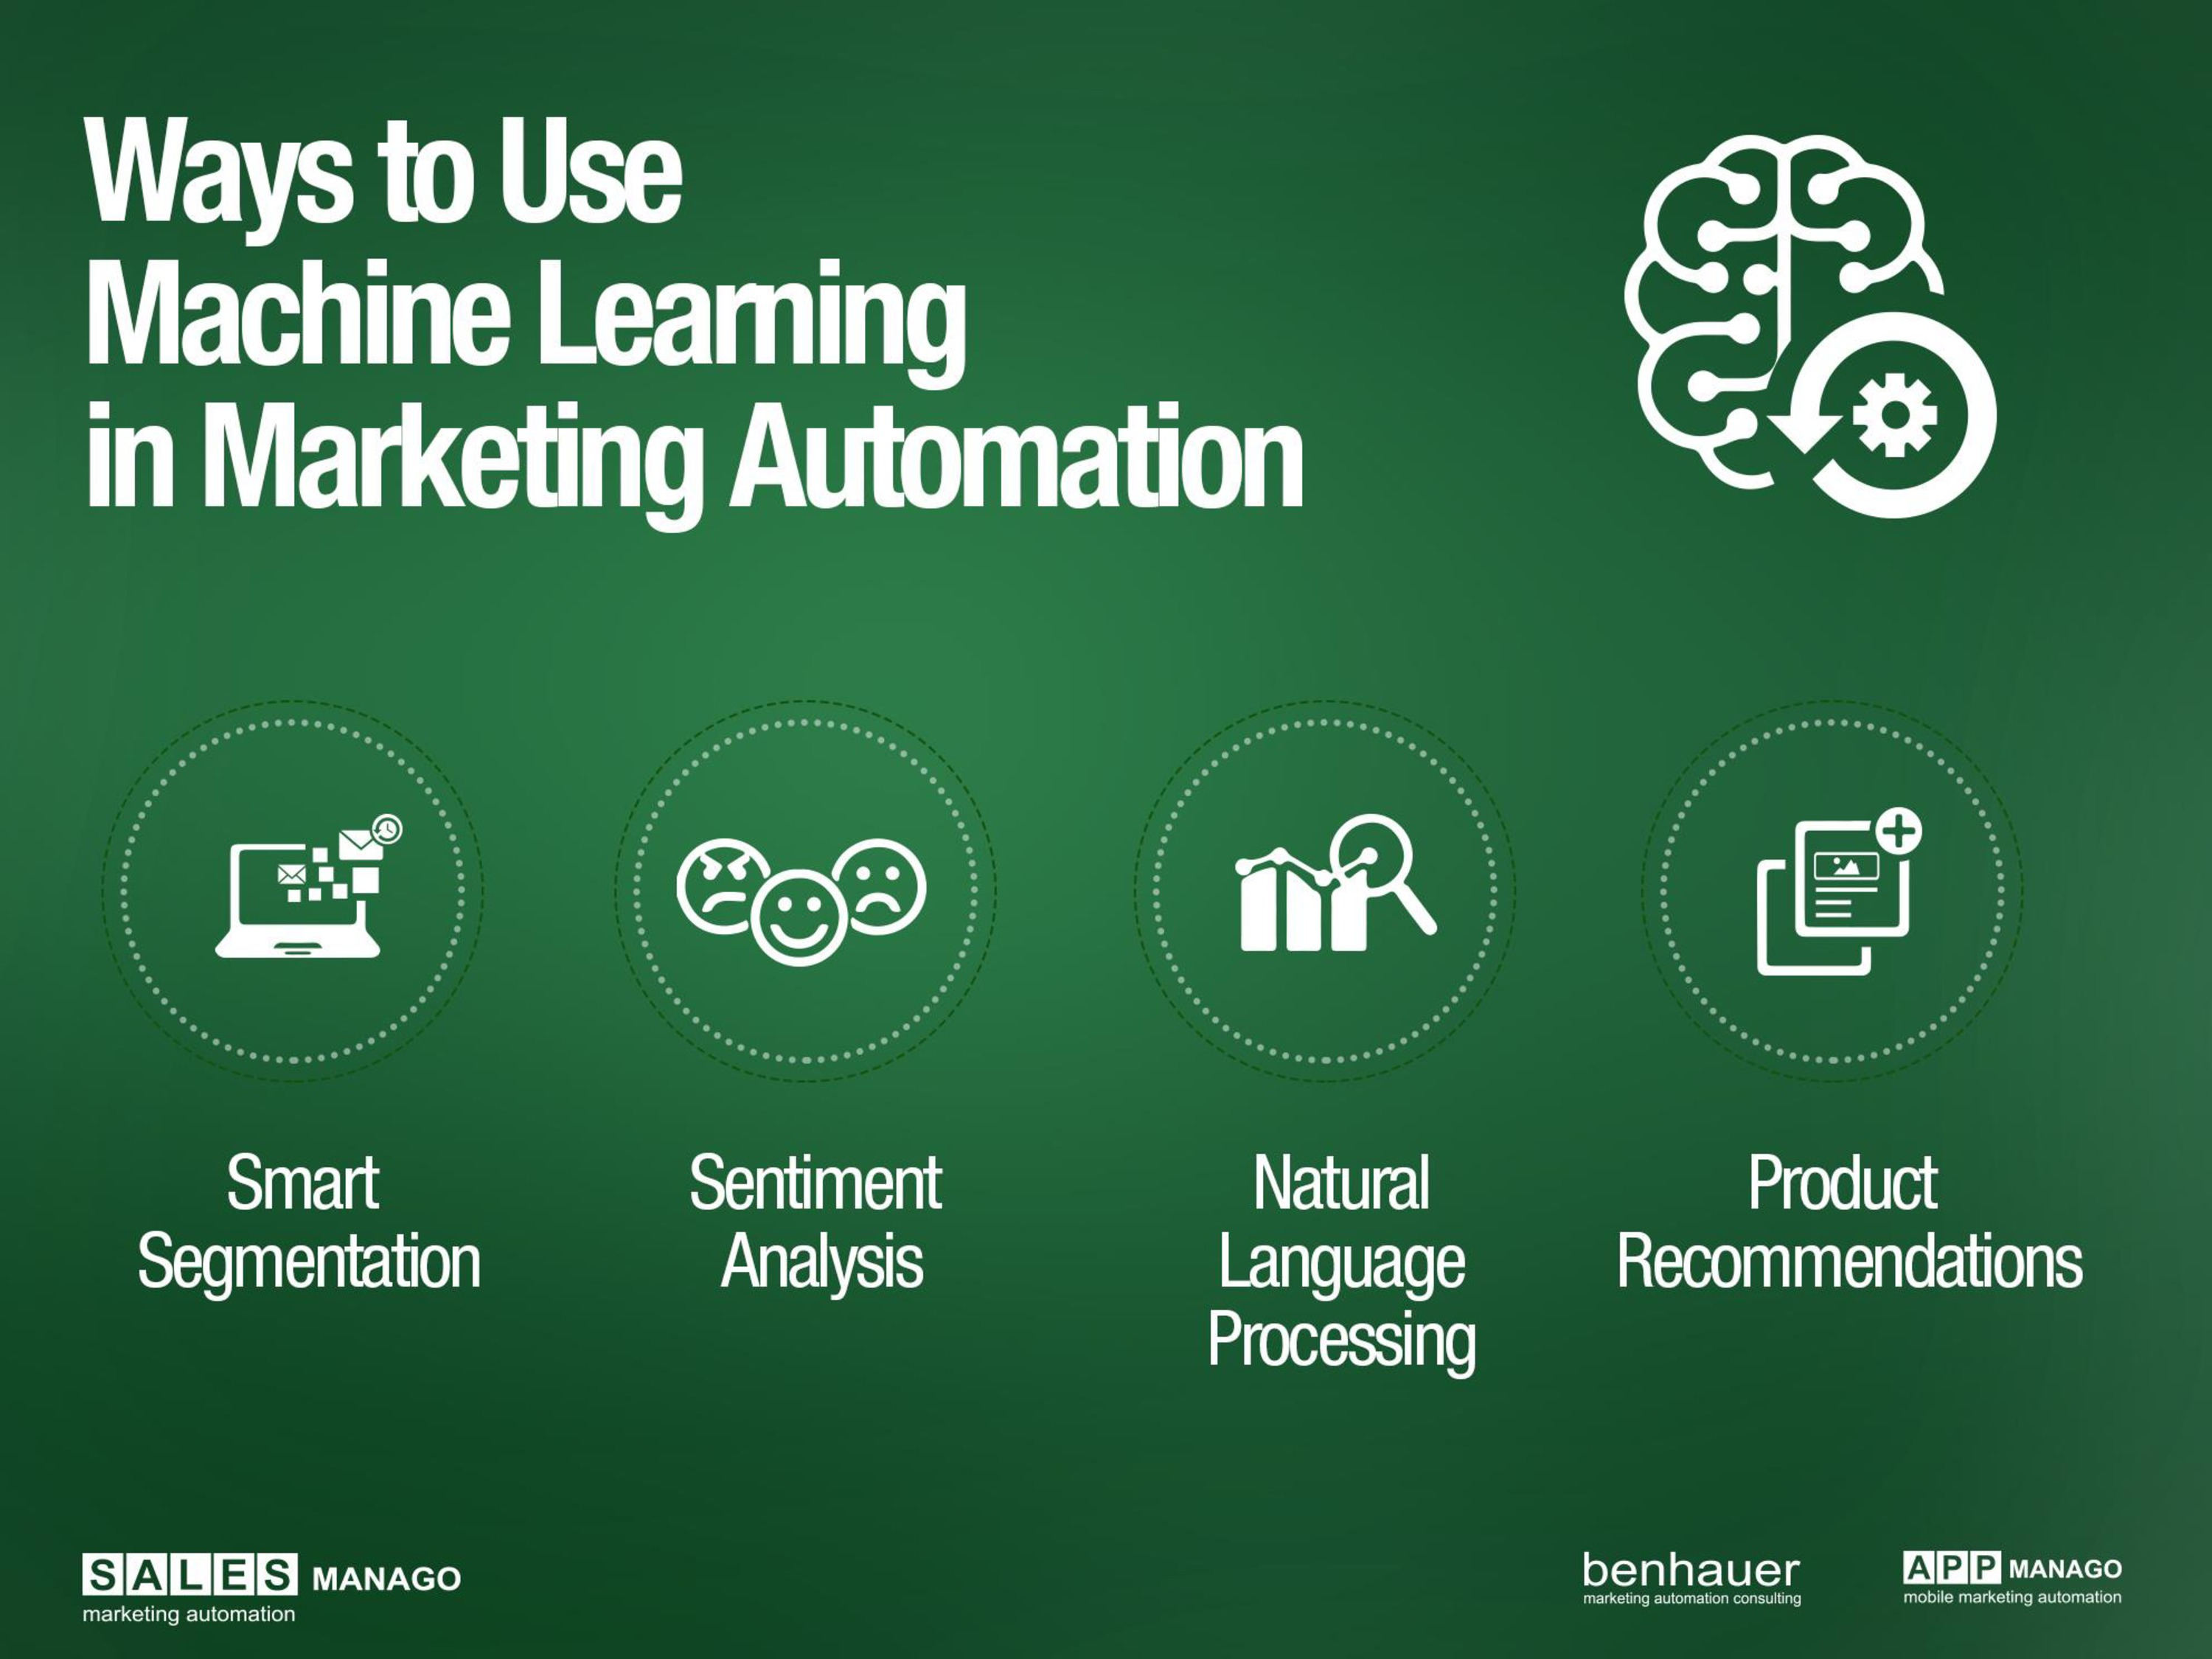 salesmanago-marketing-automation-ai-machine-learning-atrificial-intelligence